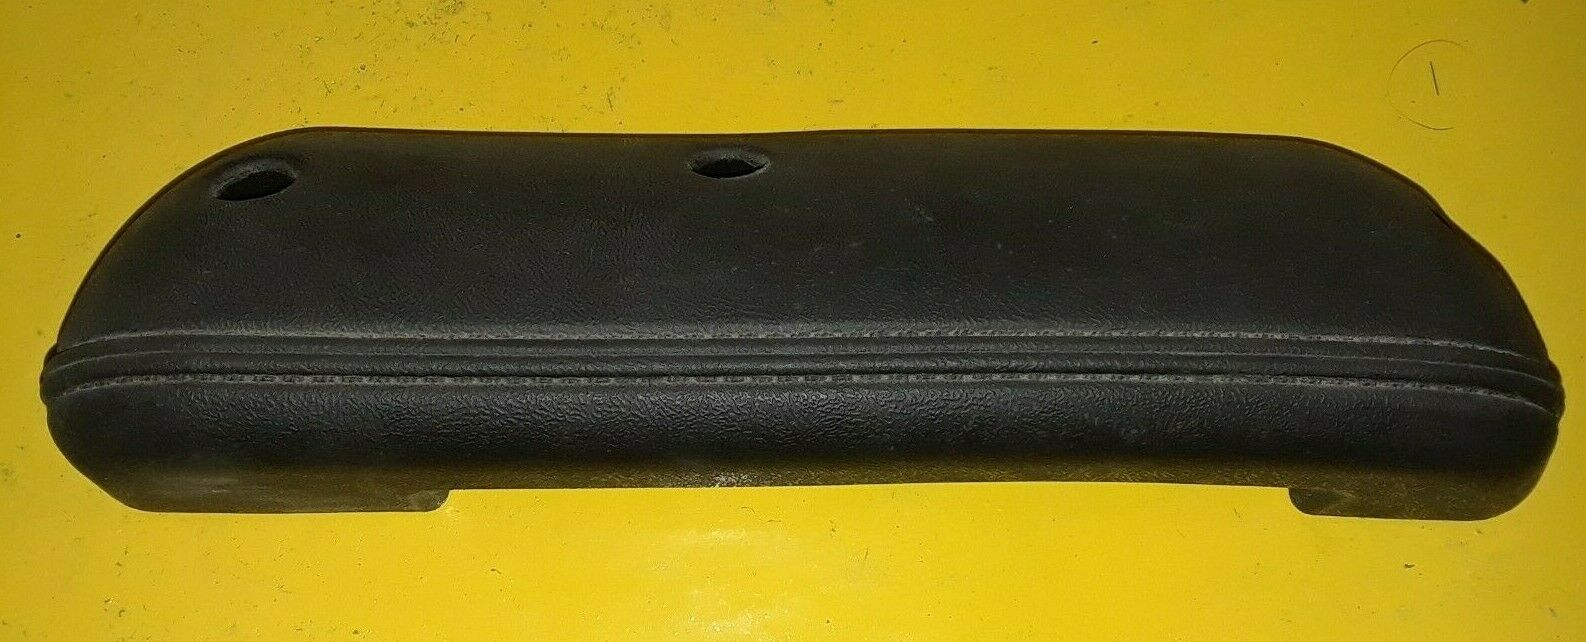 FORD AFTERMARKET FRONT RIGHT DOOR PANEL ARMREST BLACK D0TB-1024140-AW Does not apply